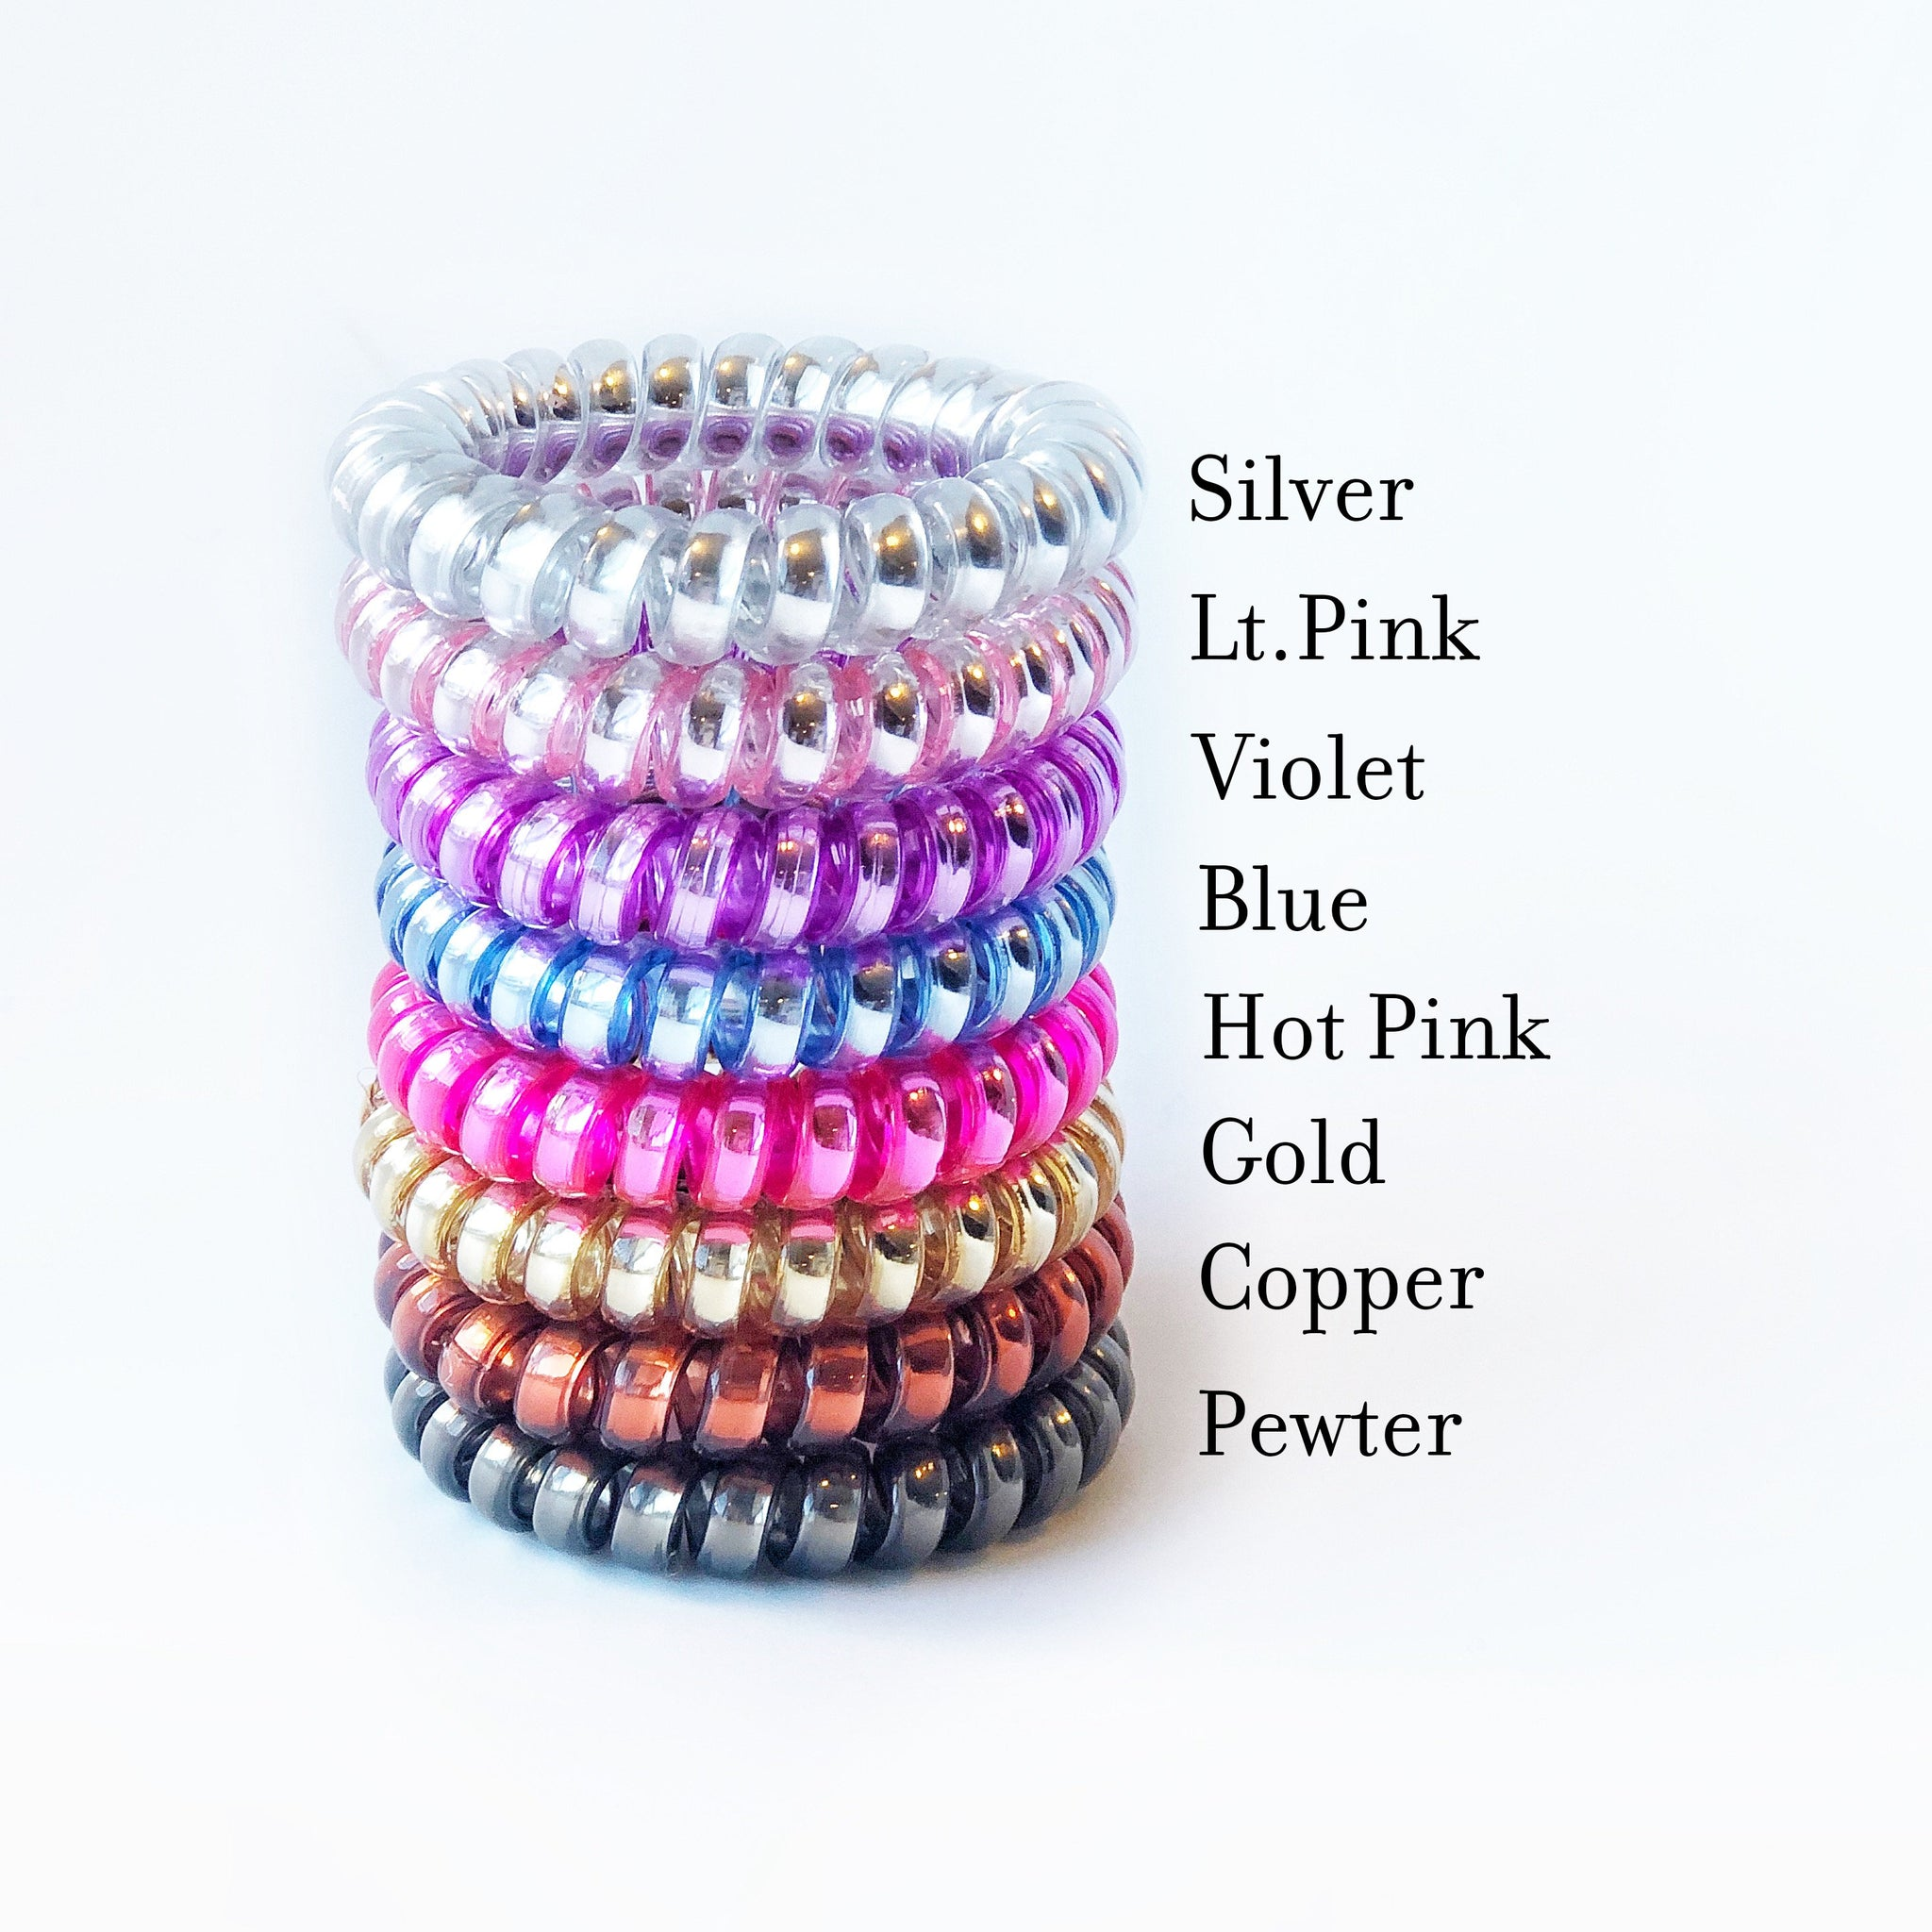 7th Birthday Party Favors, Spiral Hair Ties - @PlumPolkaDot